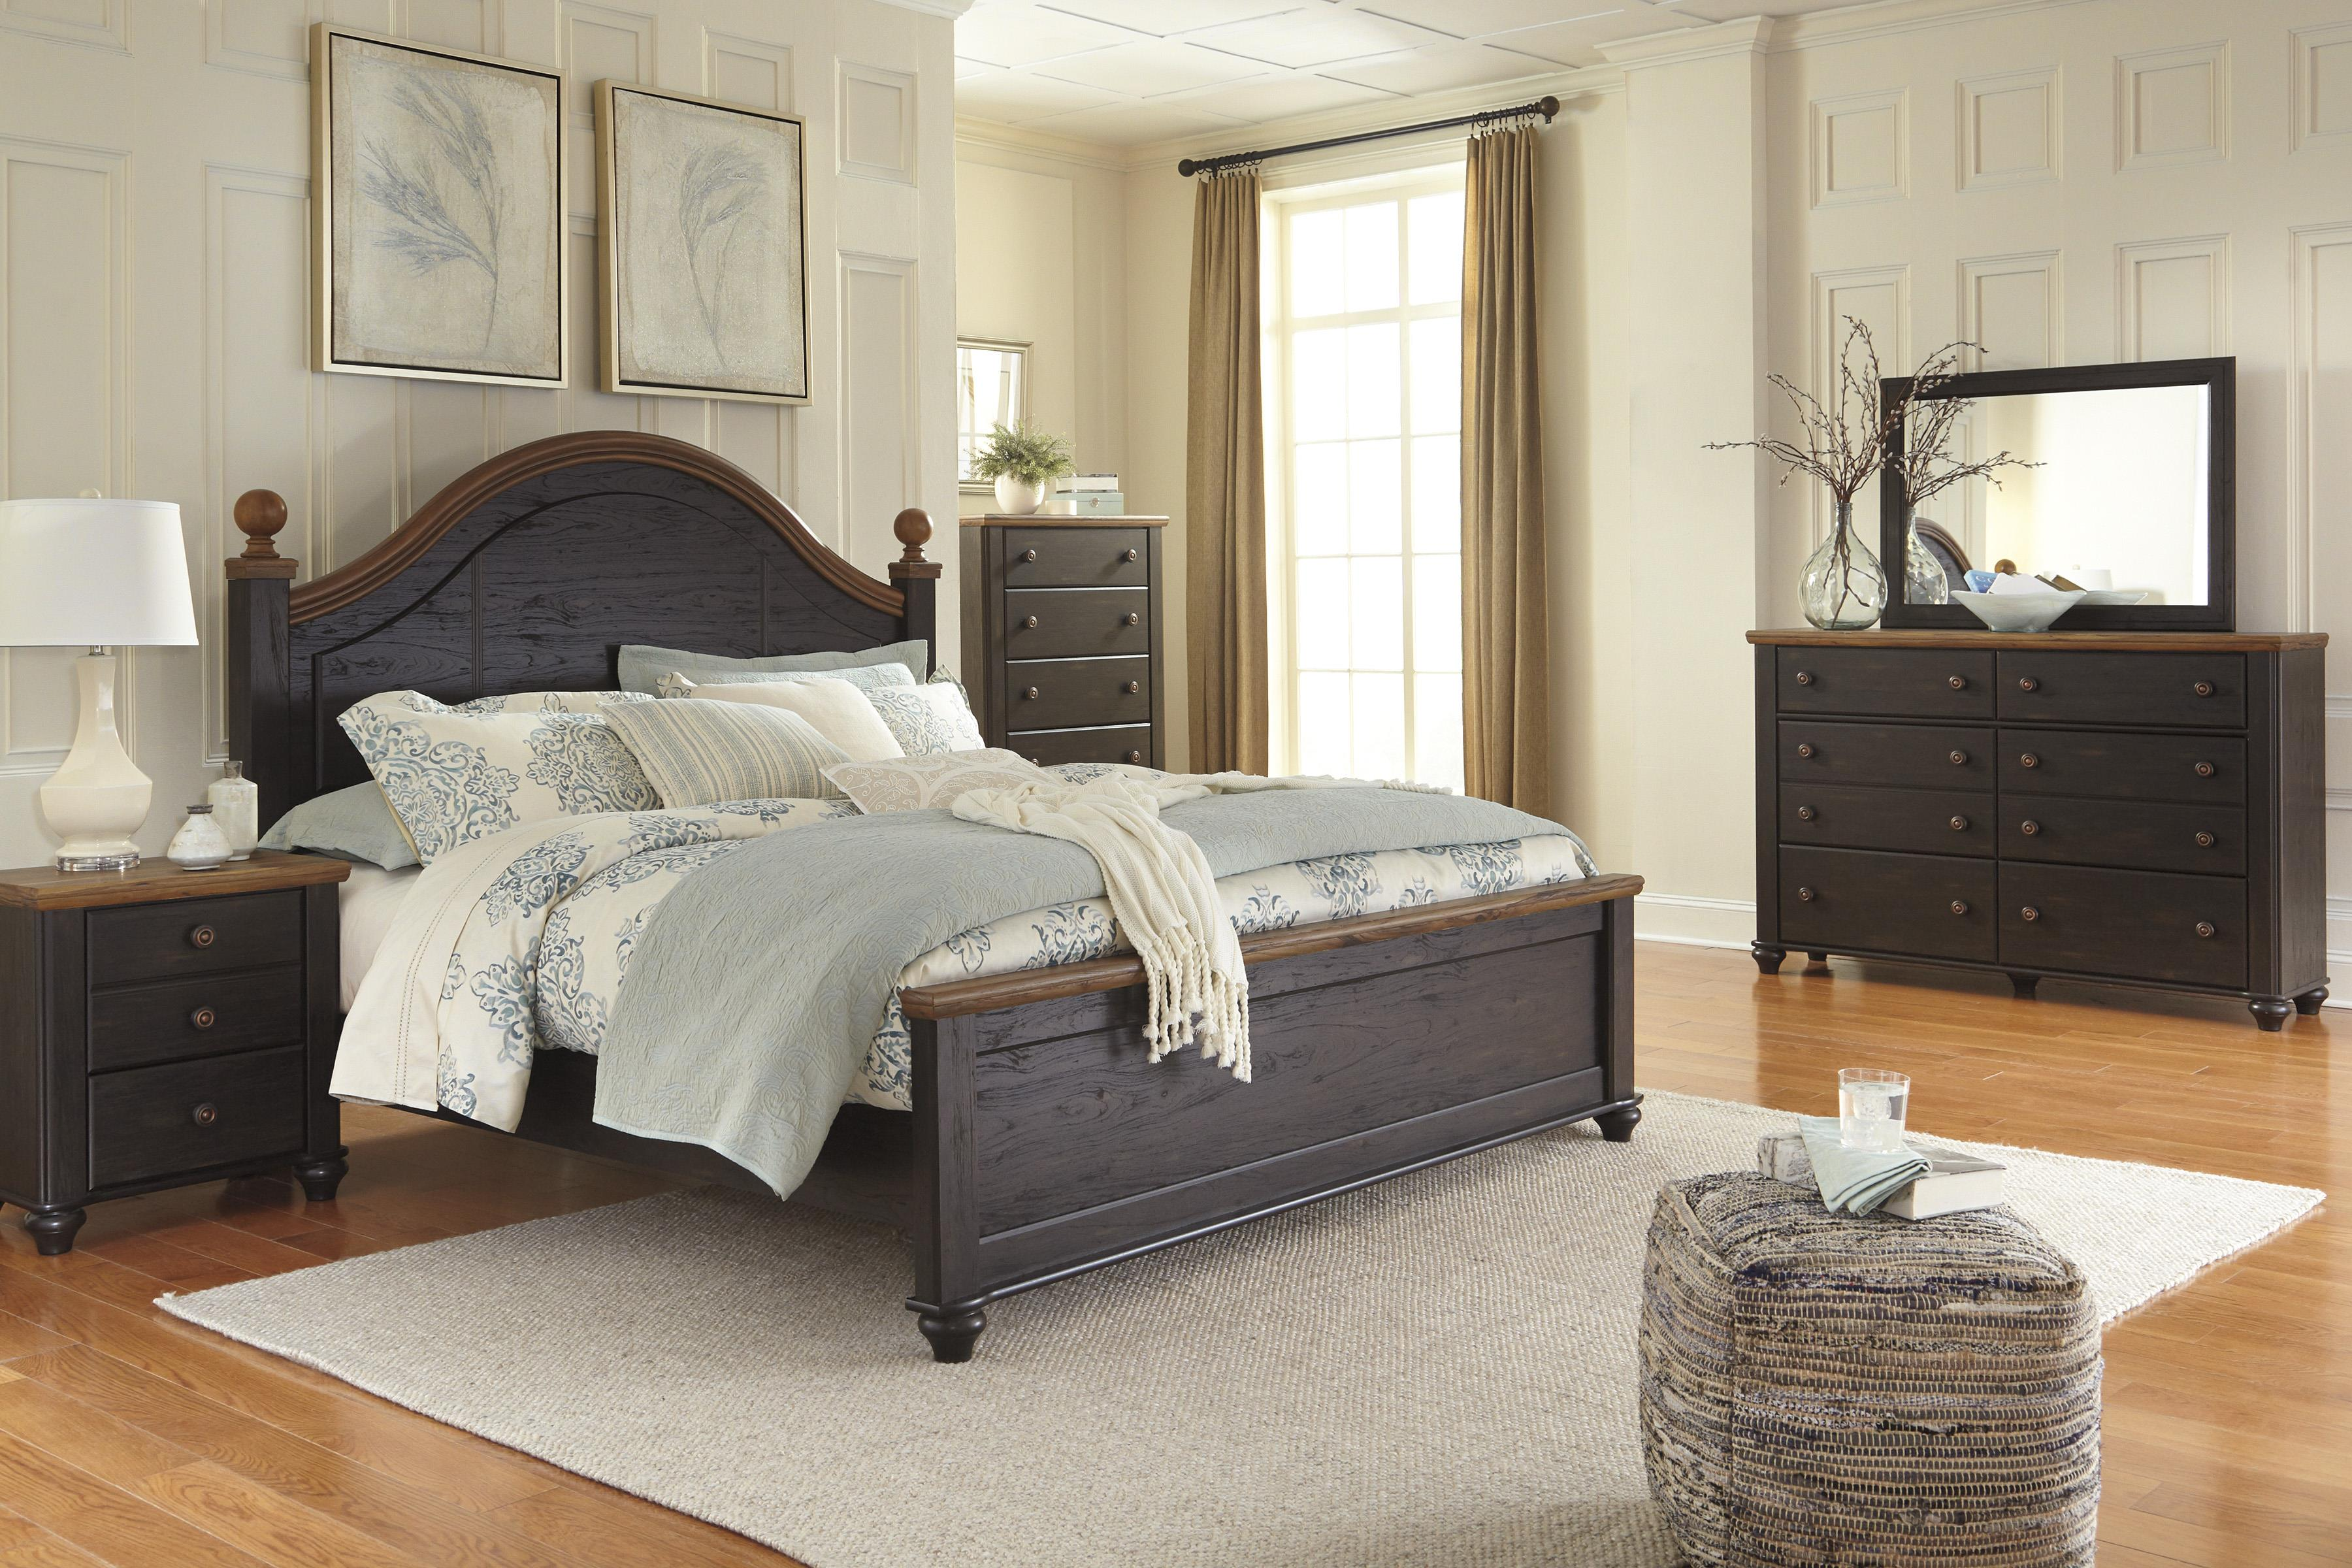 Signature Design by Ashley Maxington King Bedroom Group - Item Number: B220 K Bedroom Group 2